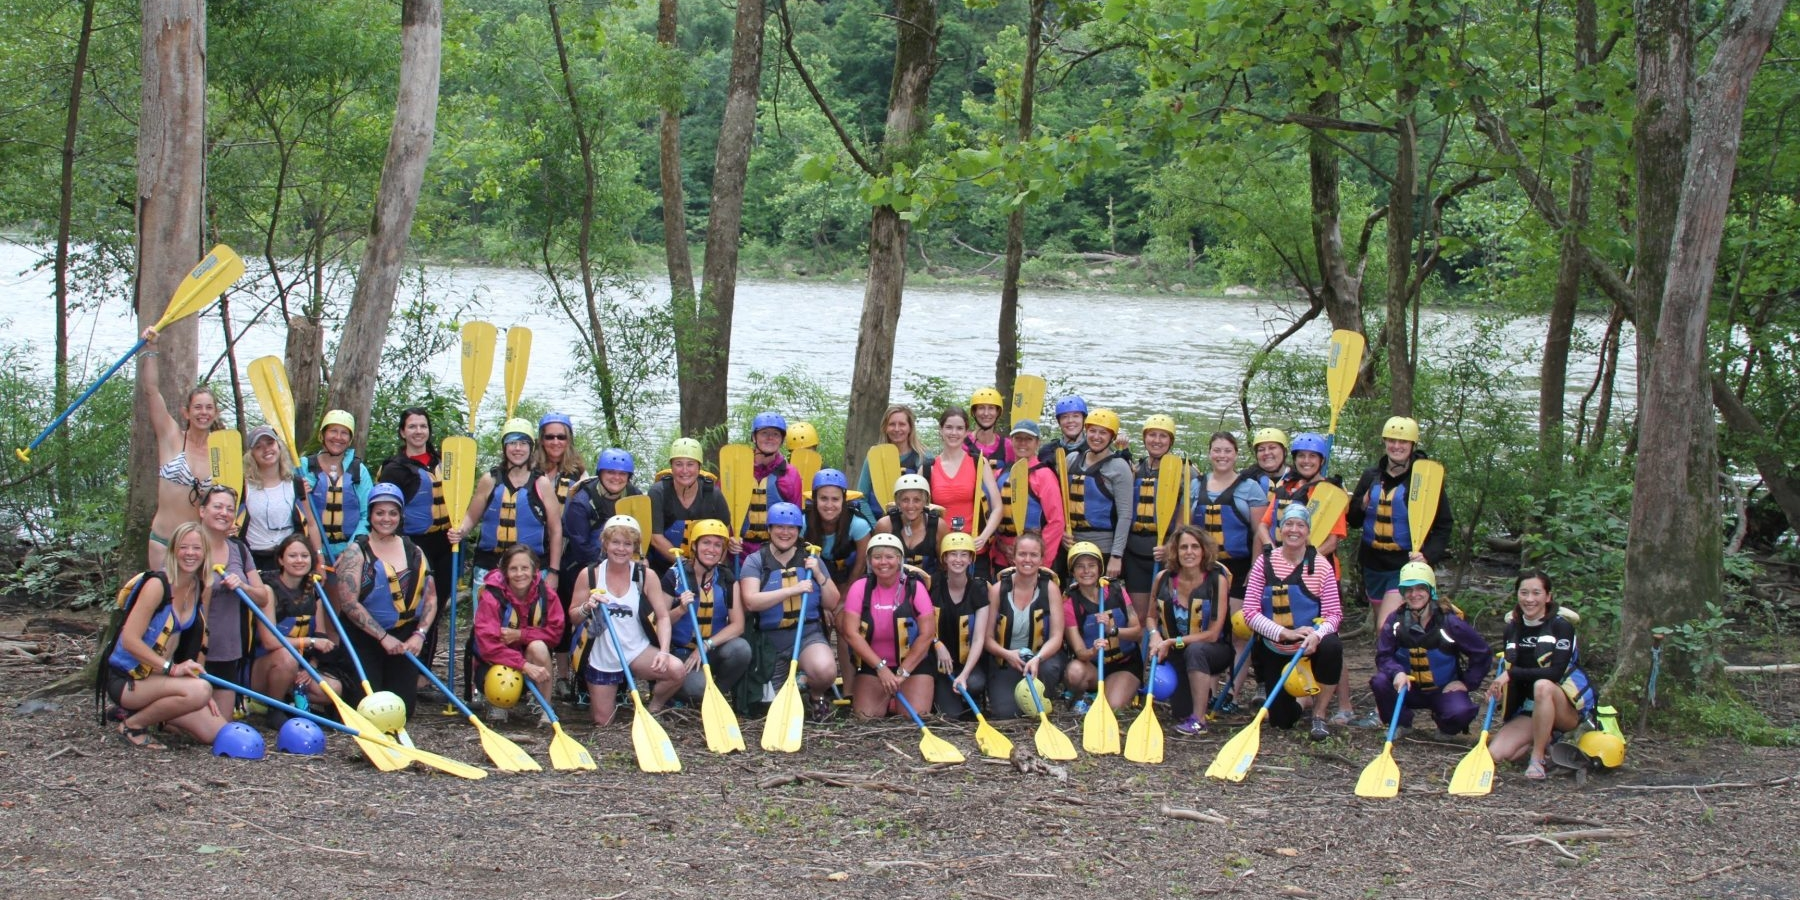 Women Only White Water Rafting Explorer Chick